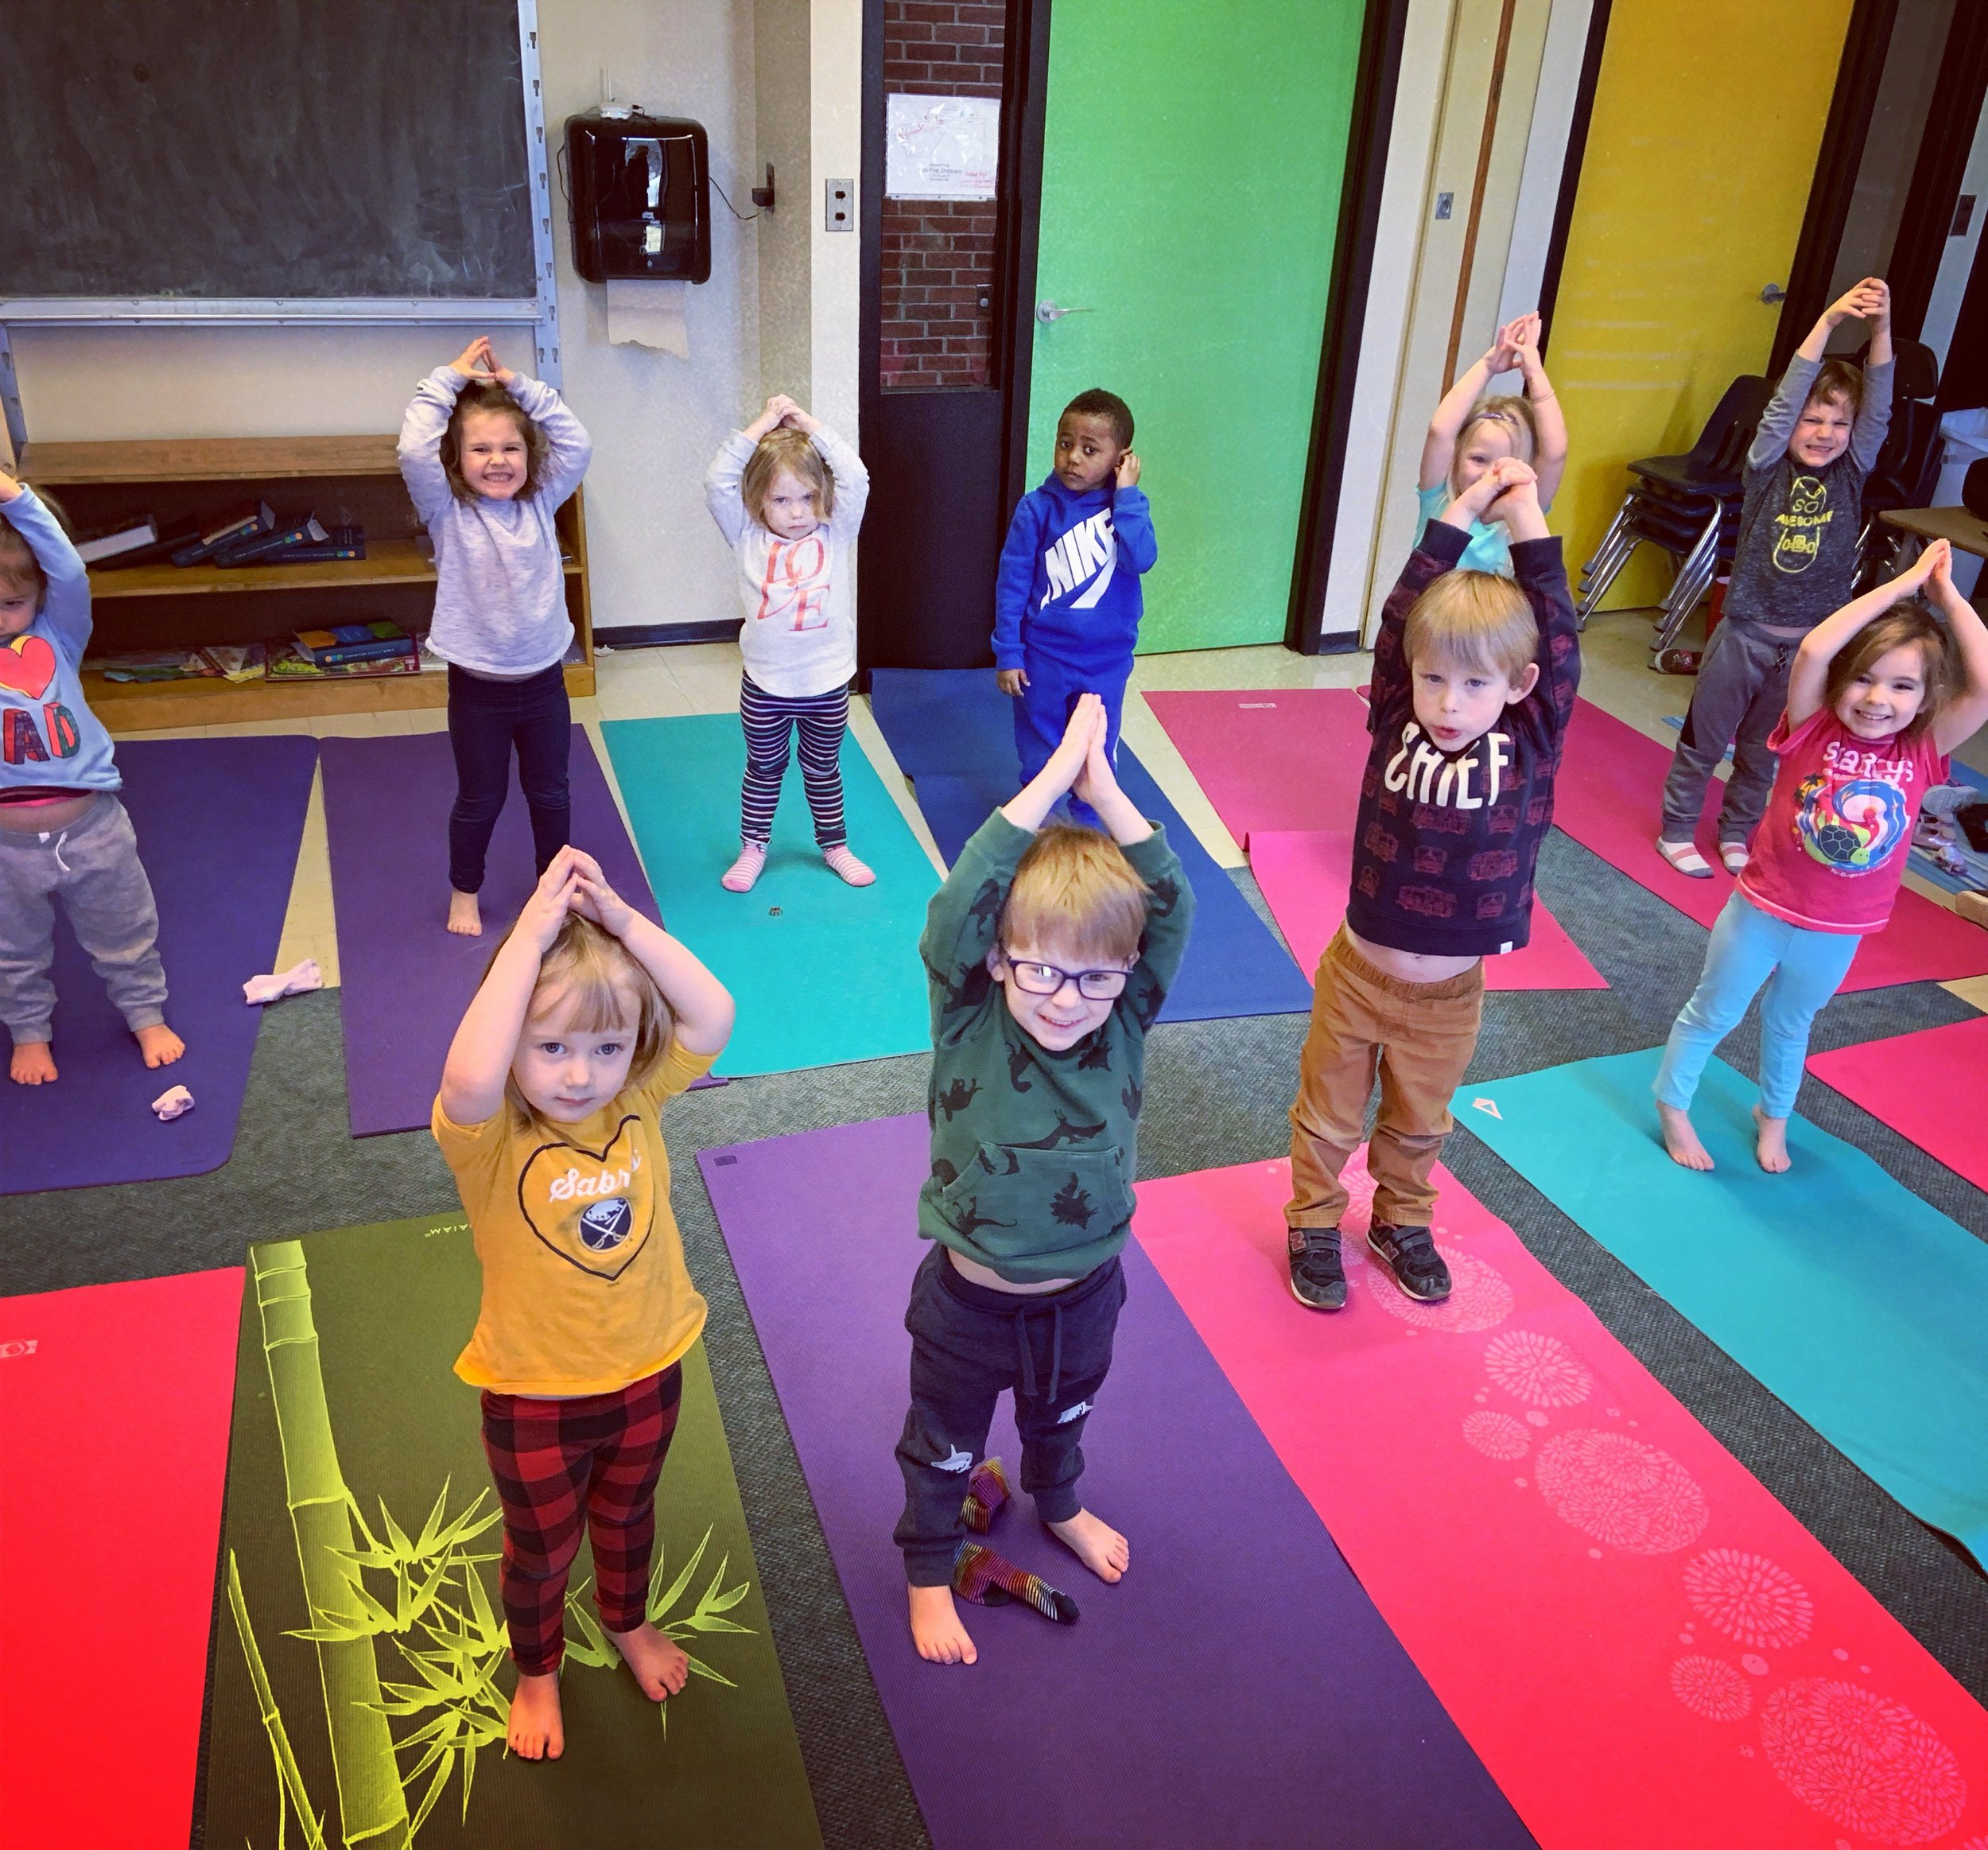 Little yogis with strong poses and big hearts!